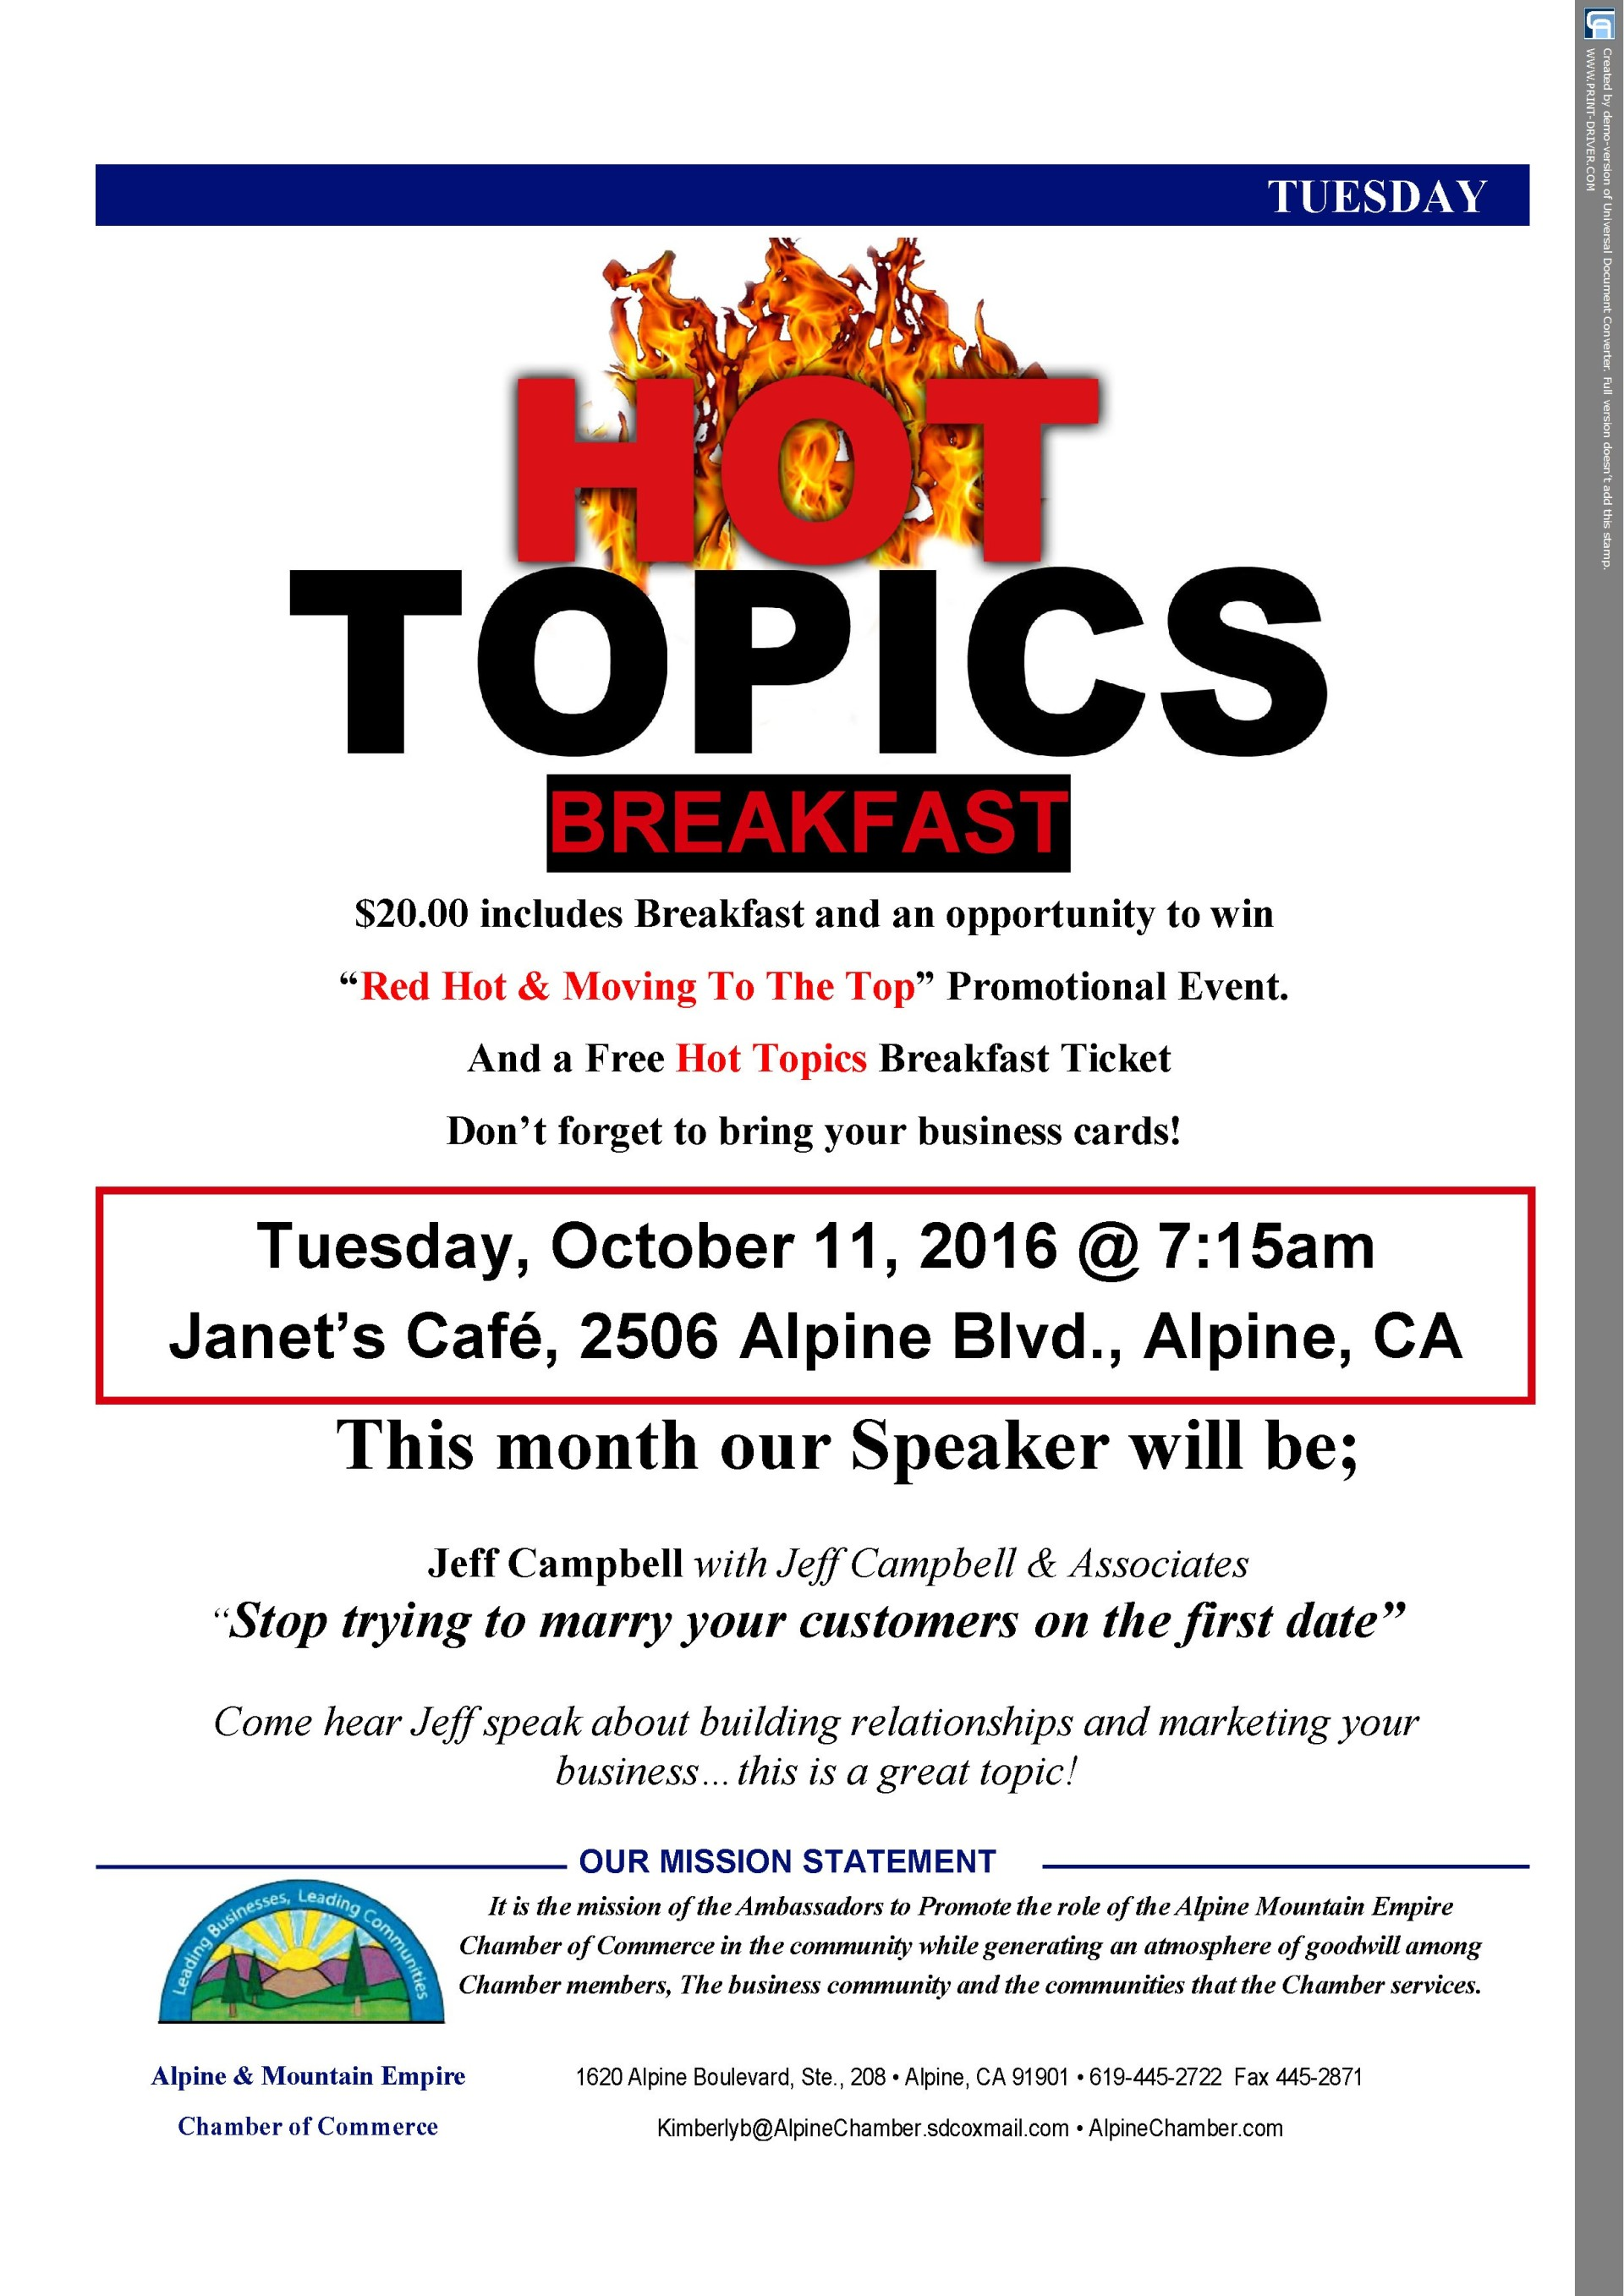 REVISED-Red-Hot-Topic-Flyer-2016-w1920.jpg